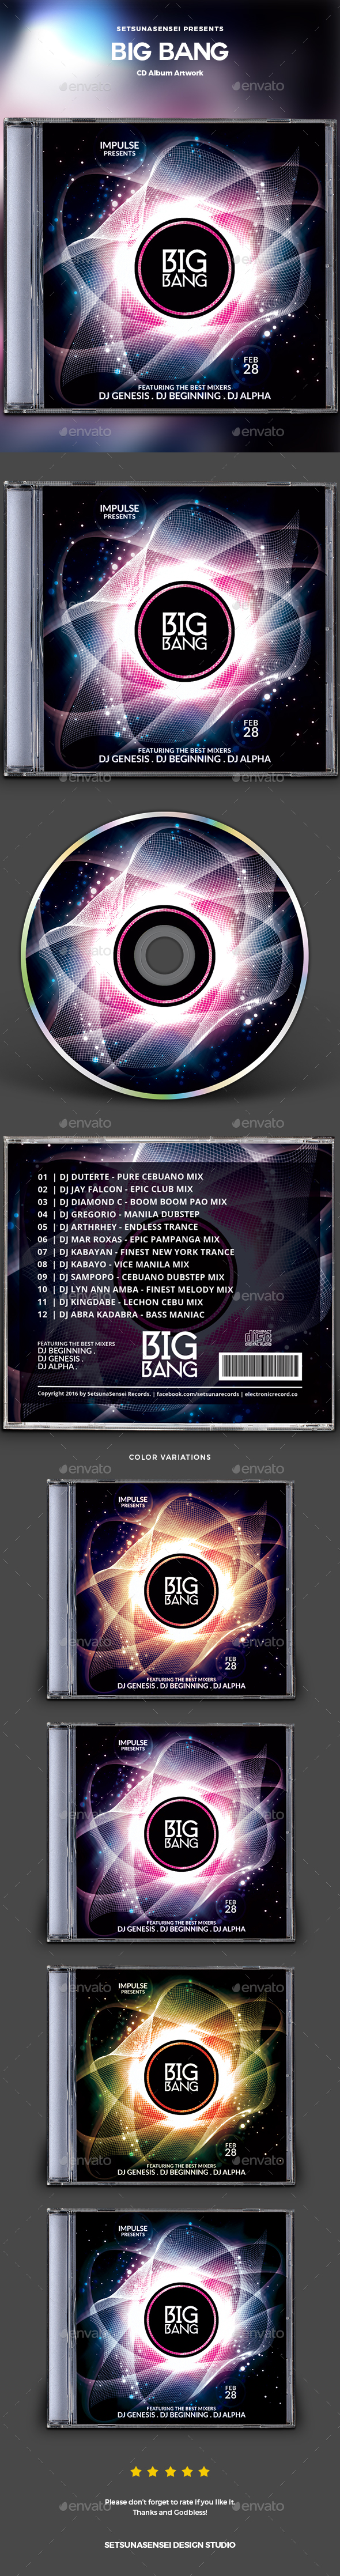 Big Bang CD Album Artwork - CD & DVD Artwork Print Templates